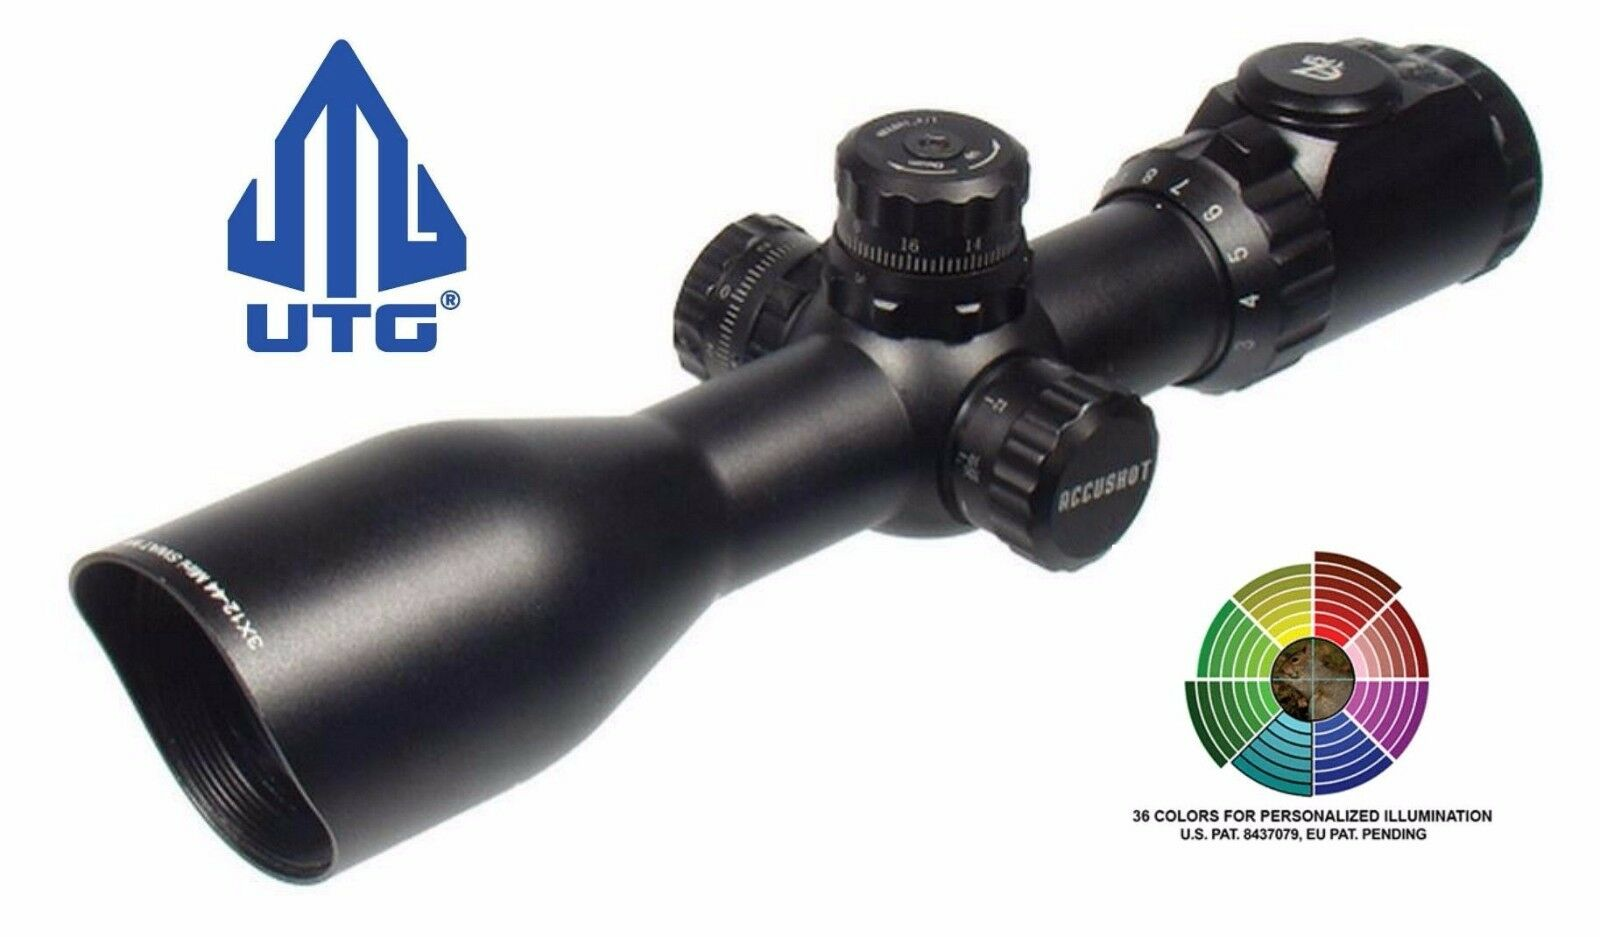 UTG Leapers 3-12X44 Swat Compact  Side Focus Mil Dot Rifle Scope 36 colors